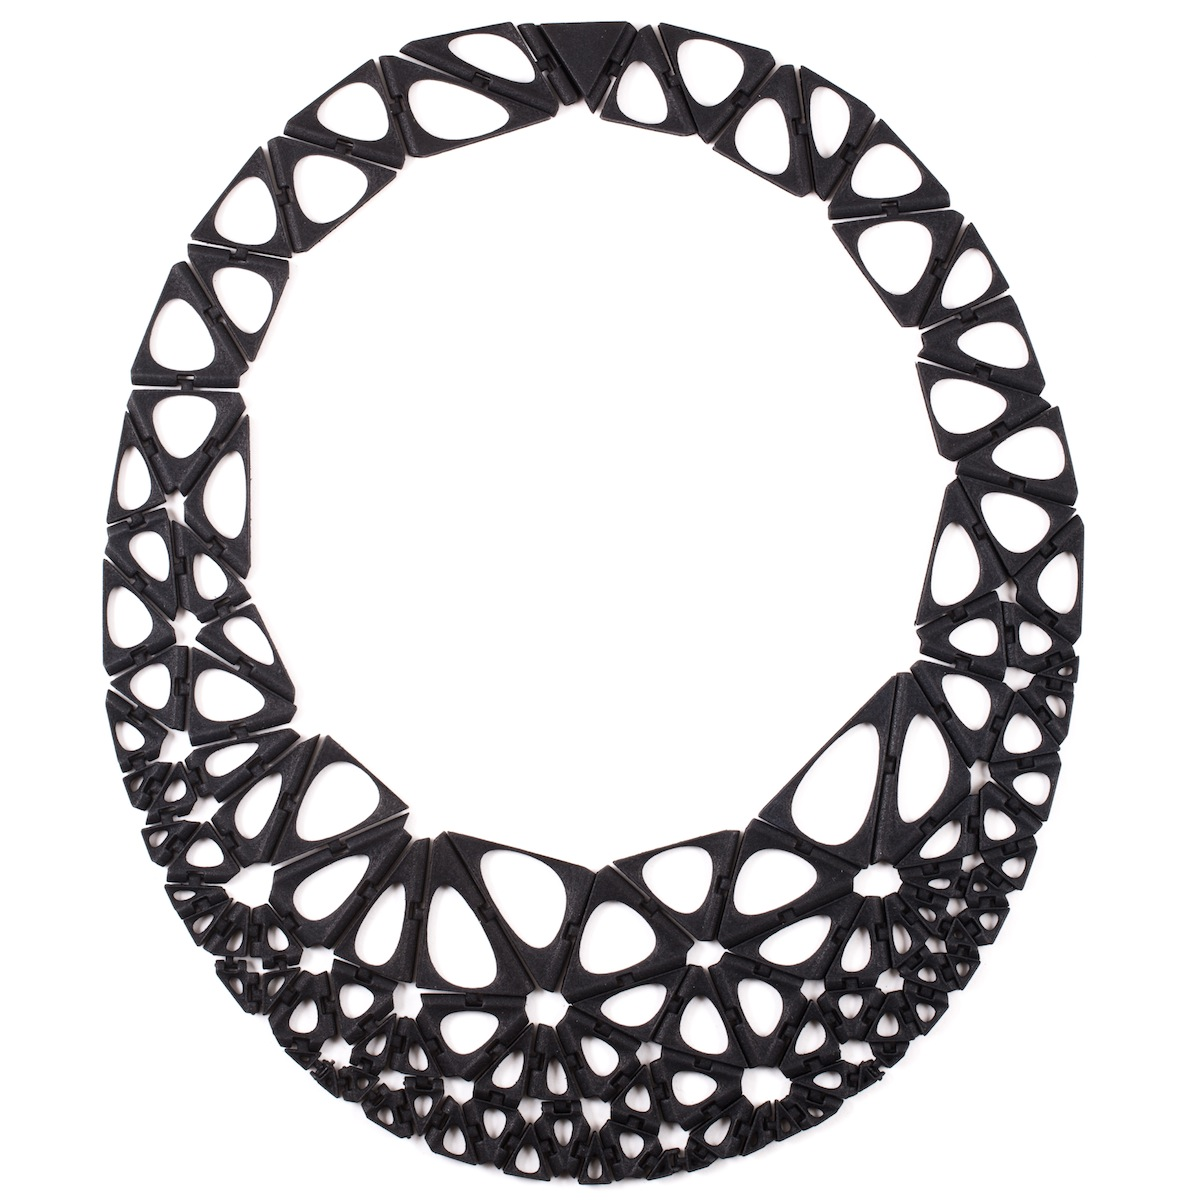 A 3D-printed necklace from nervous System